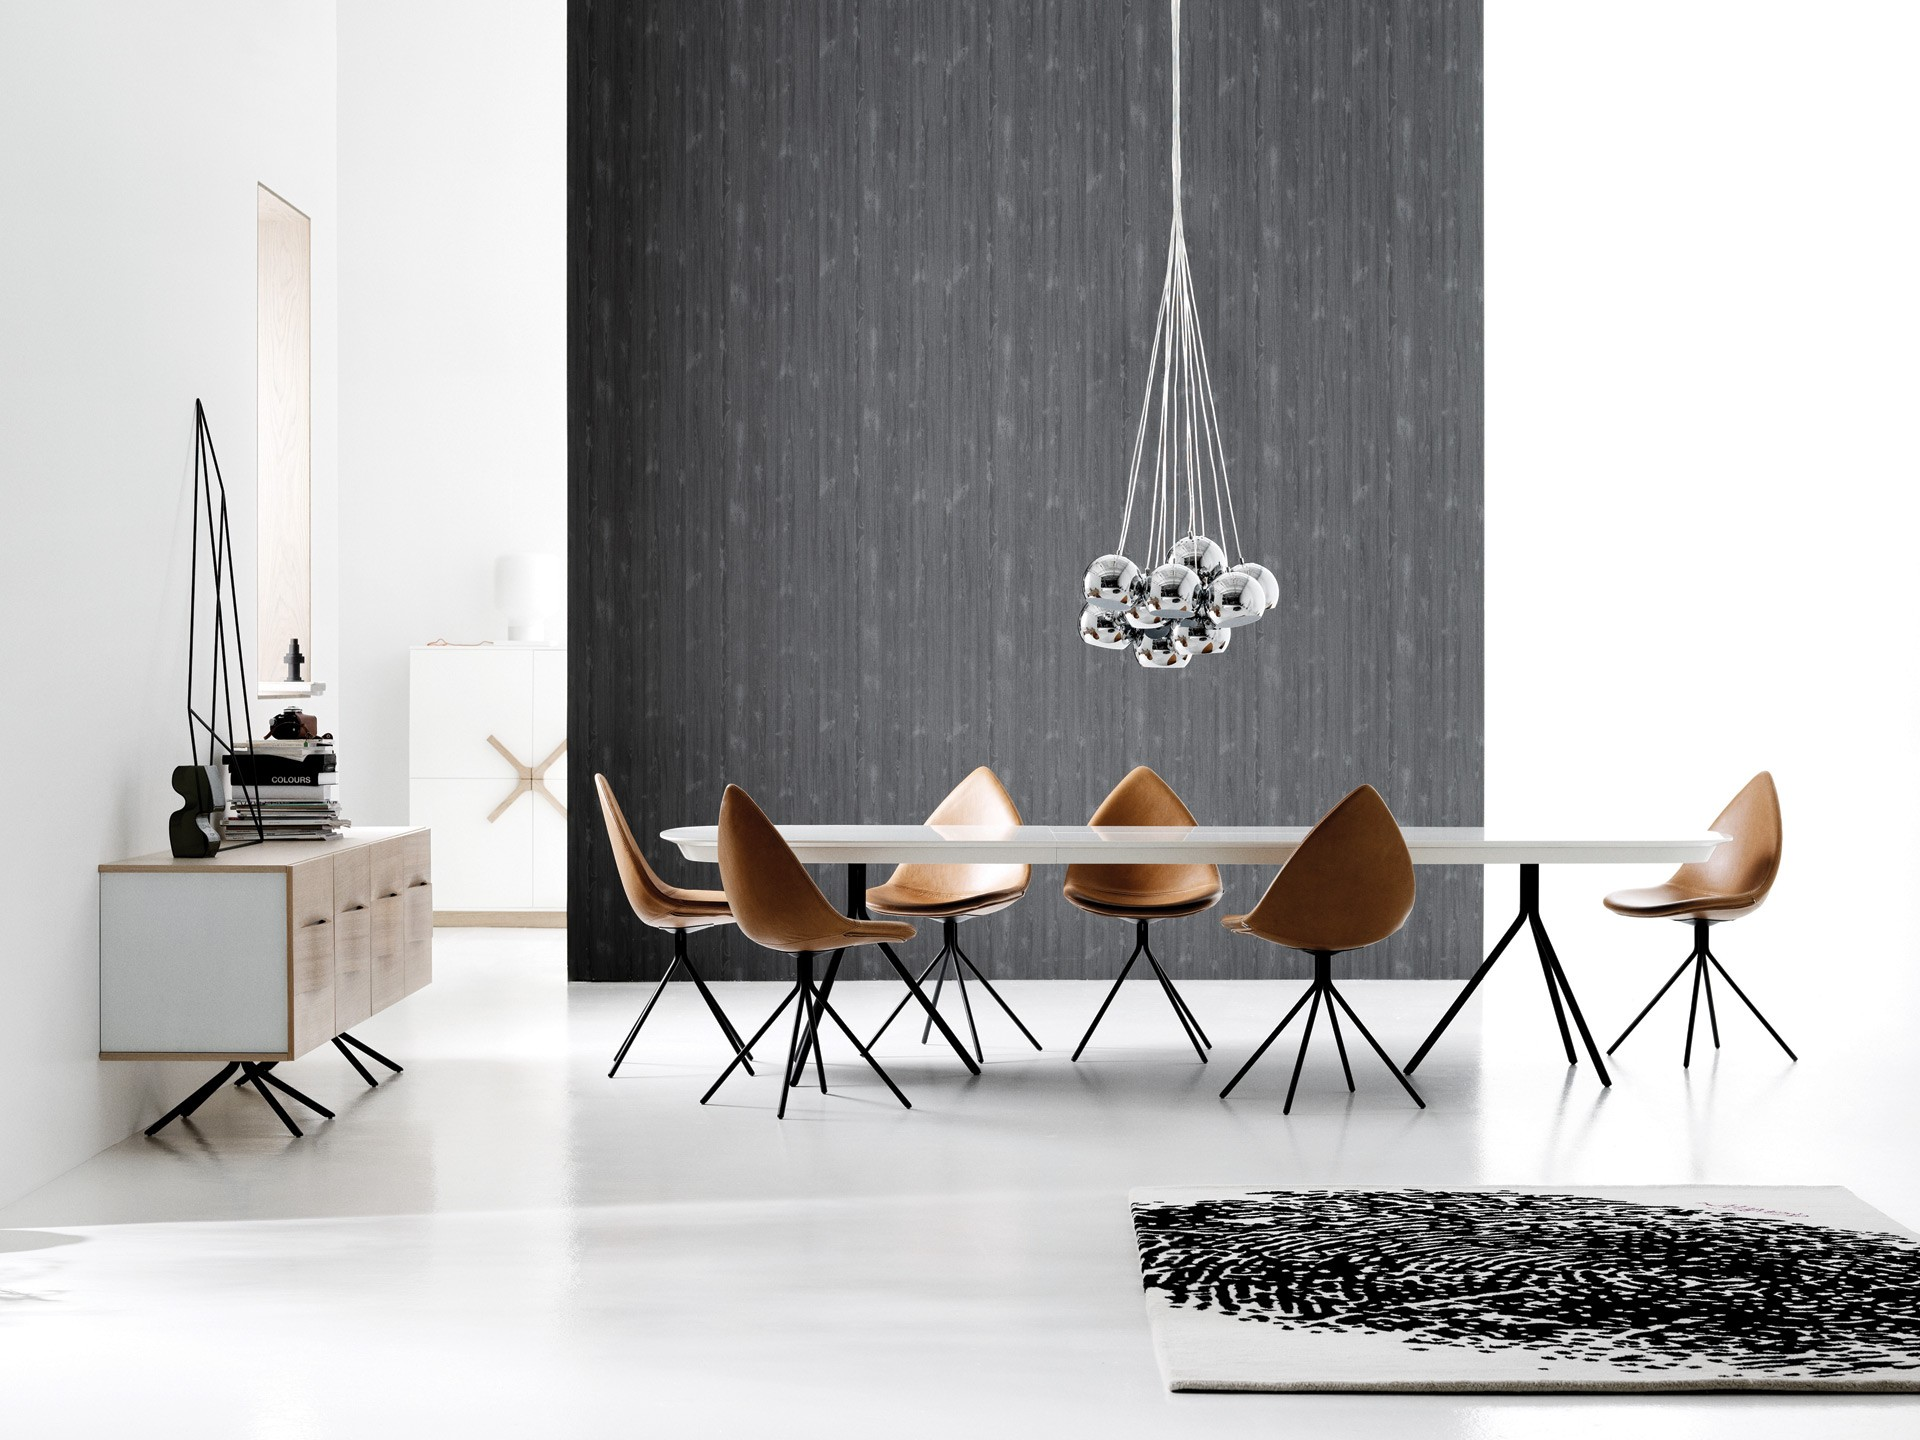 Steal The Look Of Karim Rashid's Stunning Product Design Collection_4